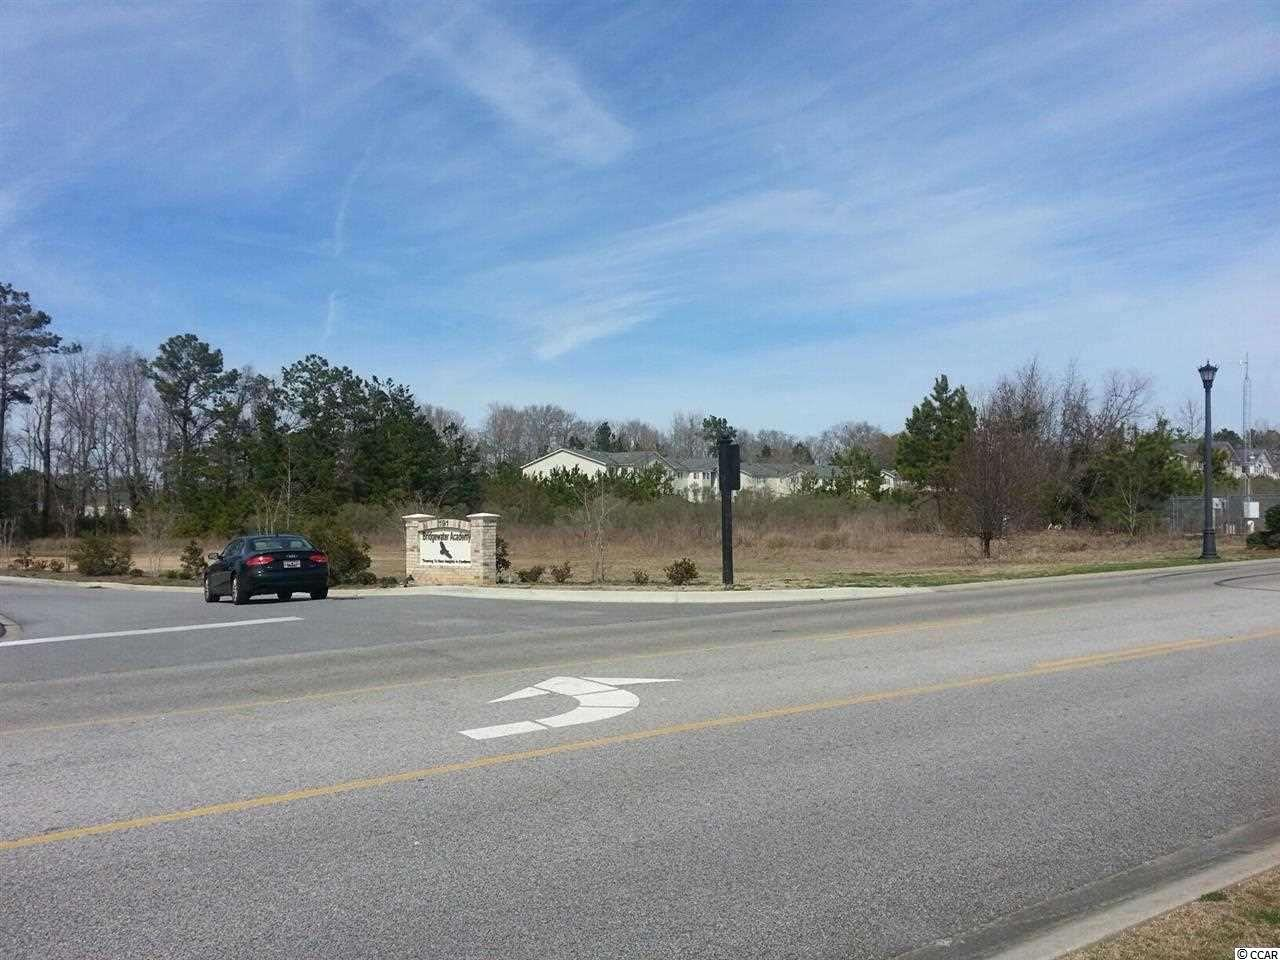 2.5 Acre Lot right off Hwy 501 and Waccamaw Blvd. Located close to ICW, next to River Landing Apartments and Bridgewater Academy. Site zoned Resort Commercial.